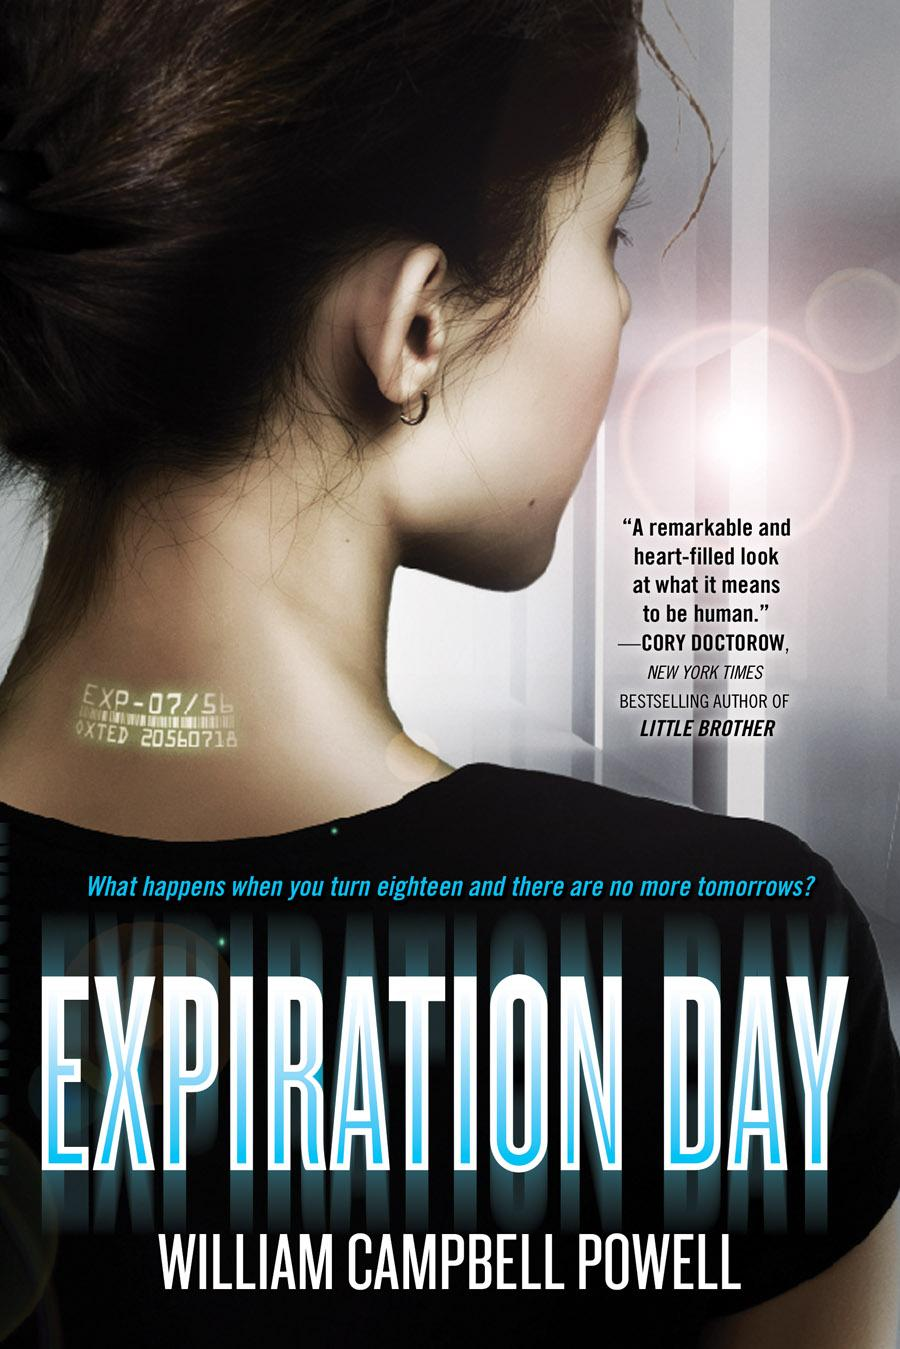 Expiration Date By William Campbell Powell, 8 (science Fiction, Ya) 3  Bluecrowne By Kate Milford, 8 (historical, Fantasy, Horror, Mg)